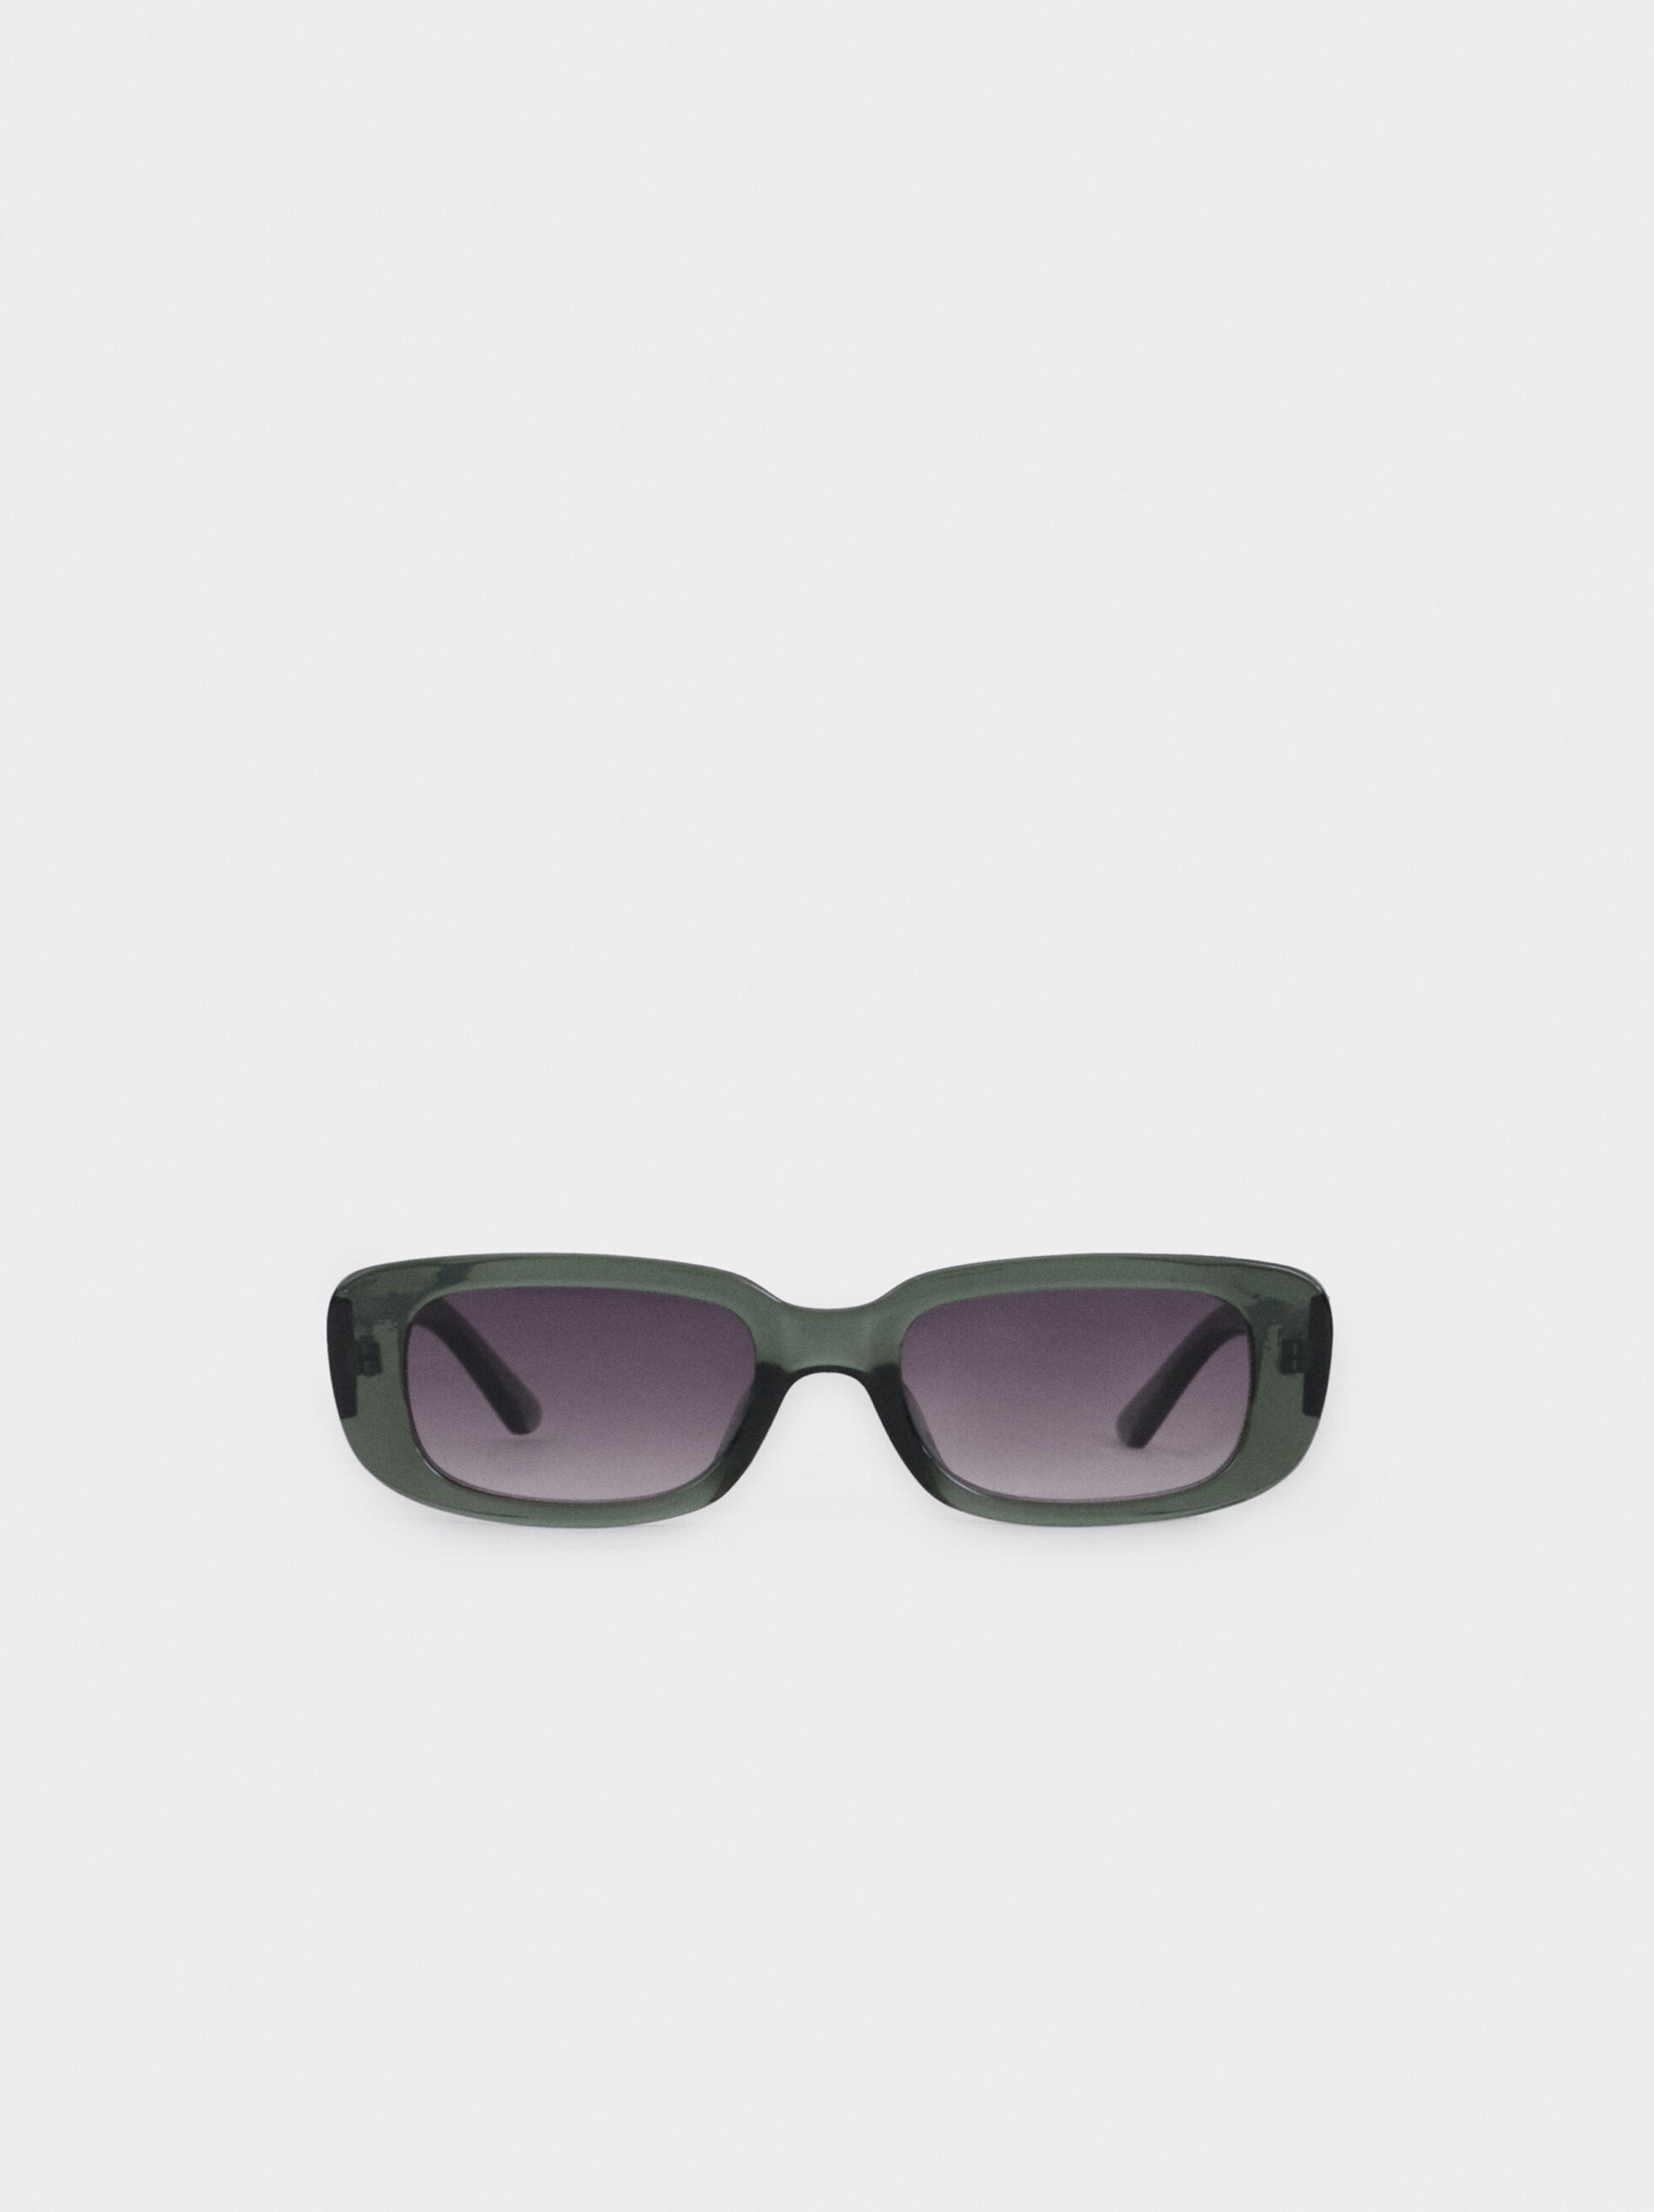 Square Sunglasses, Green, hi-res